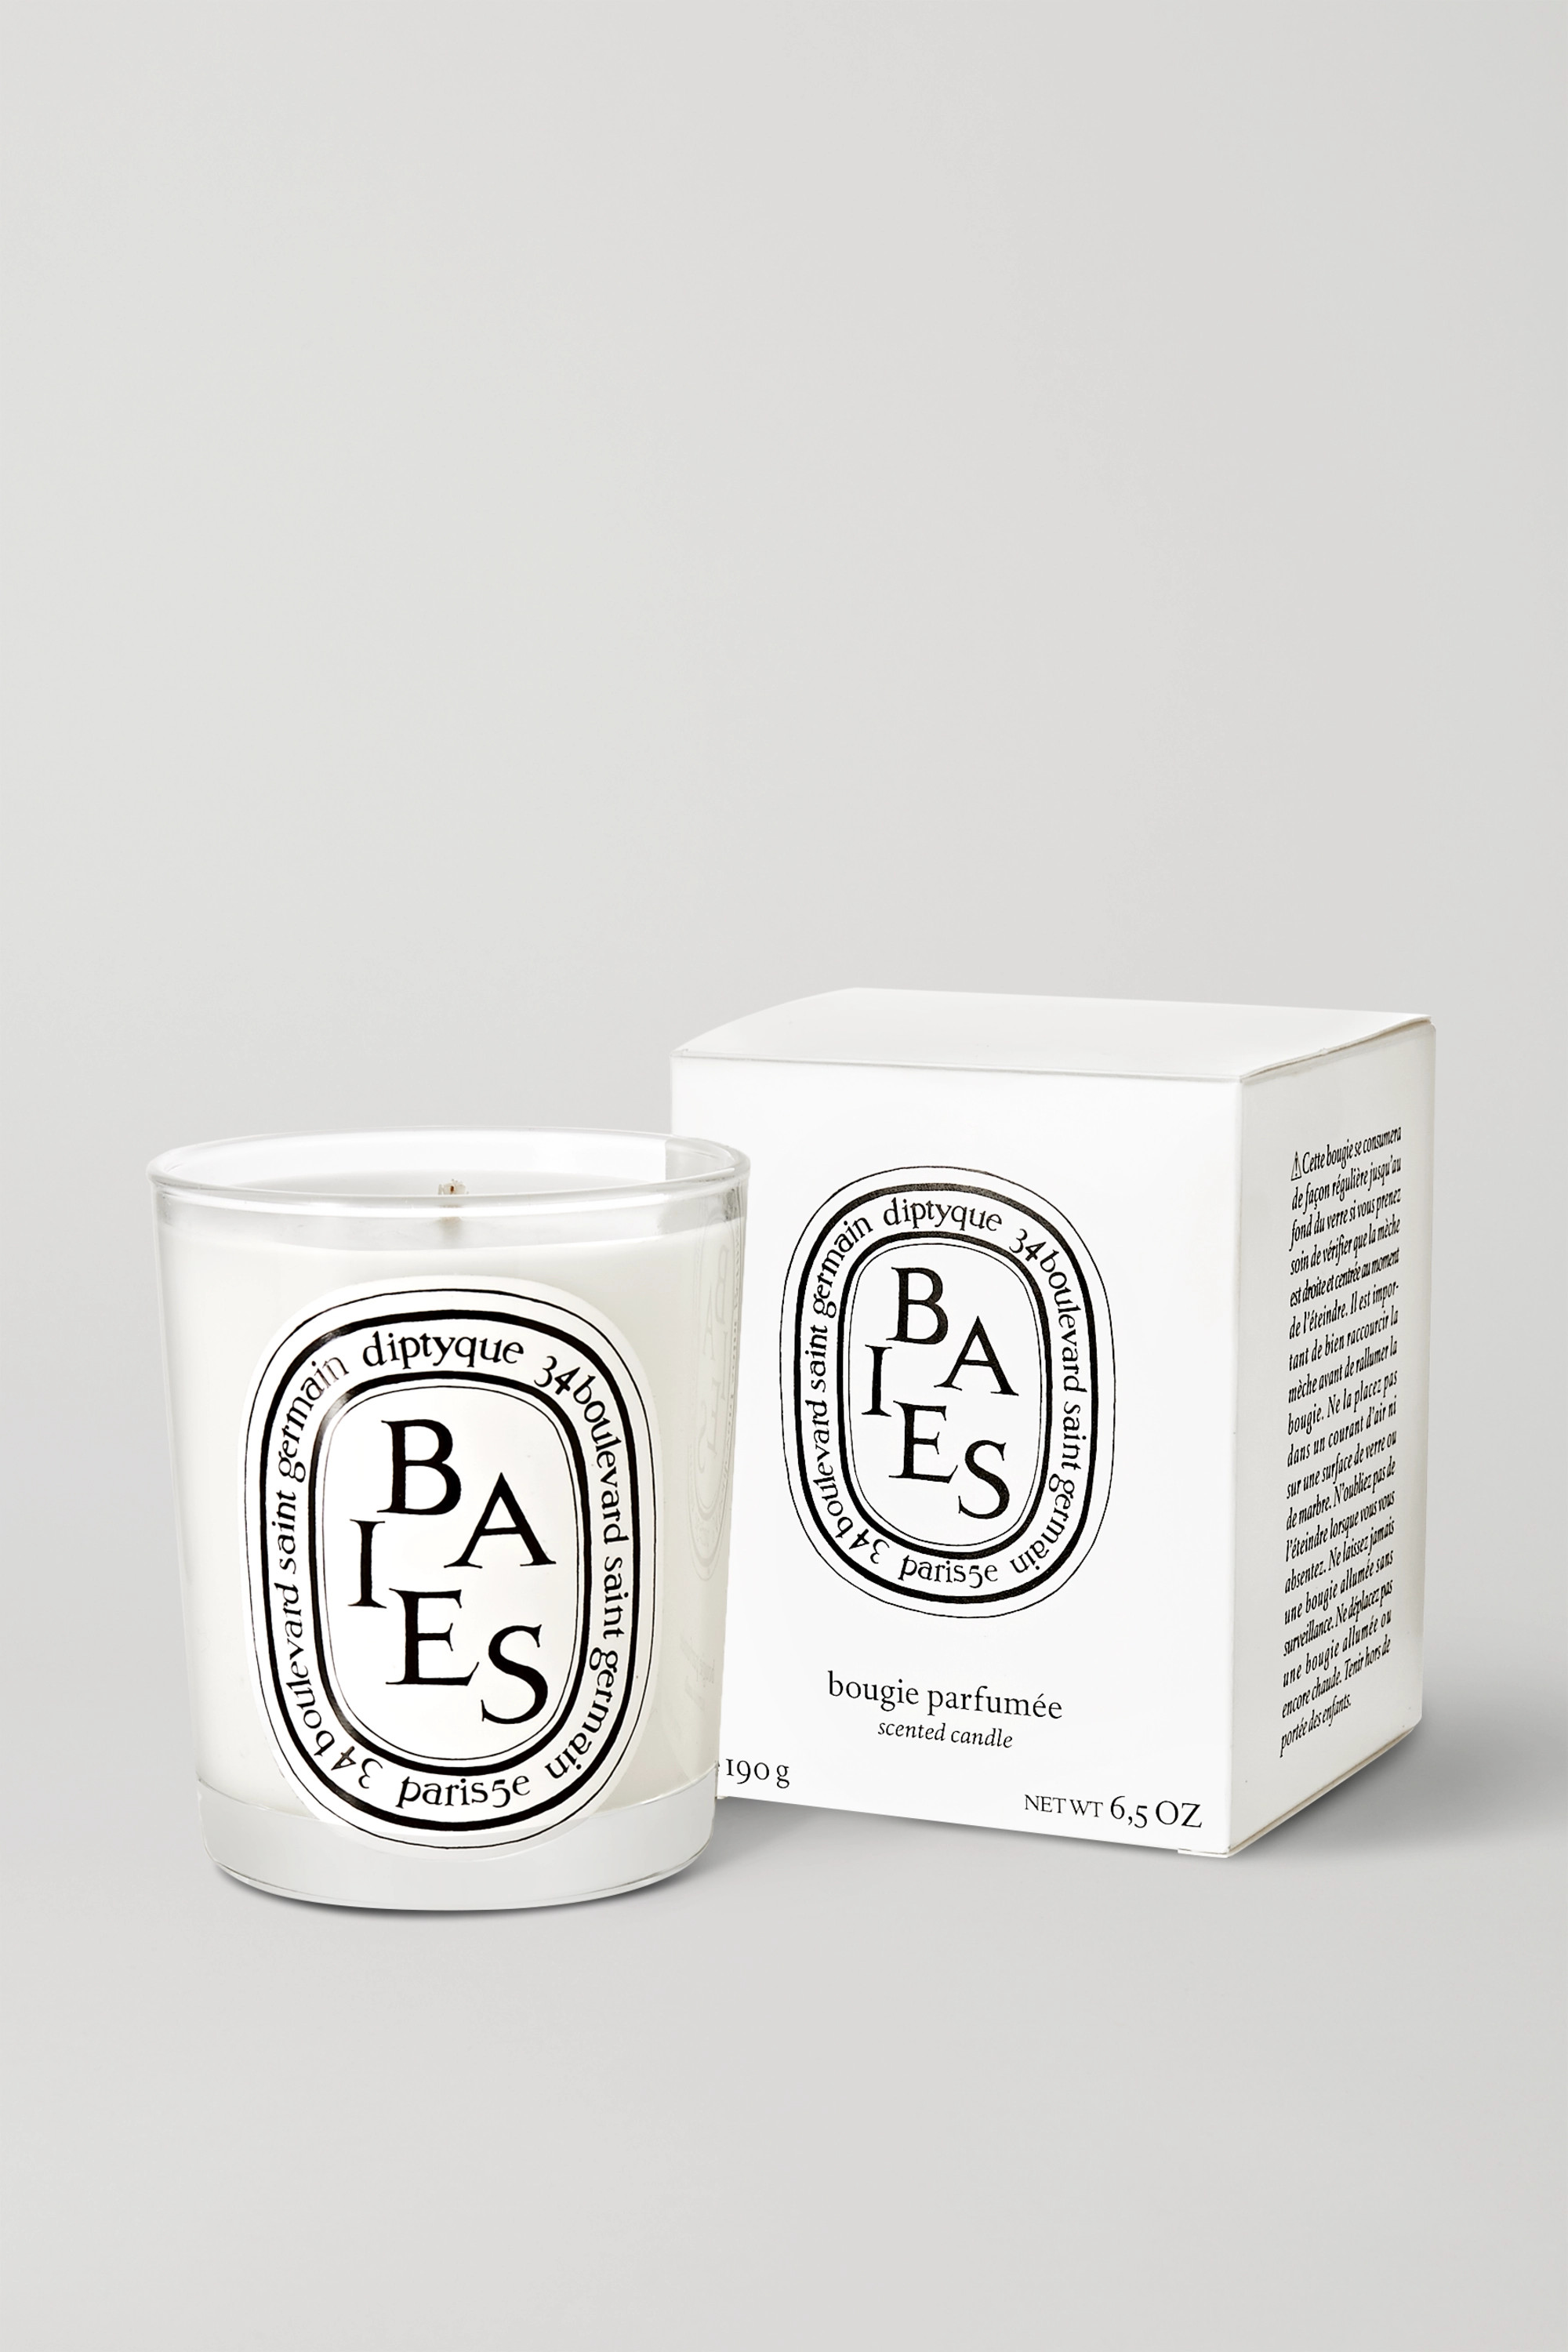 DIPTYQUE Baies scented candle, 190g